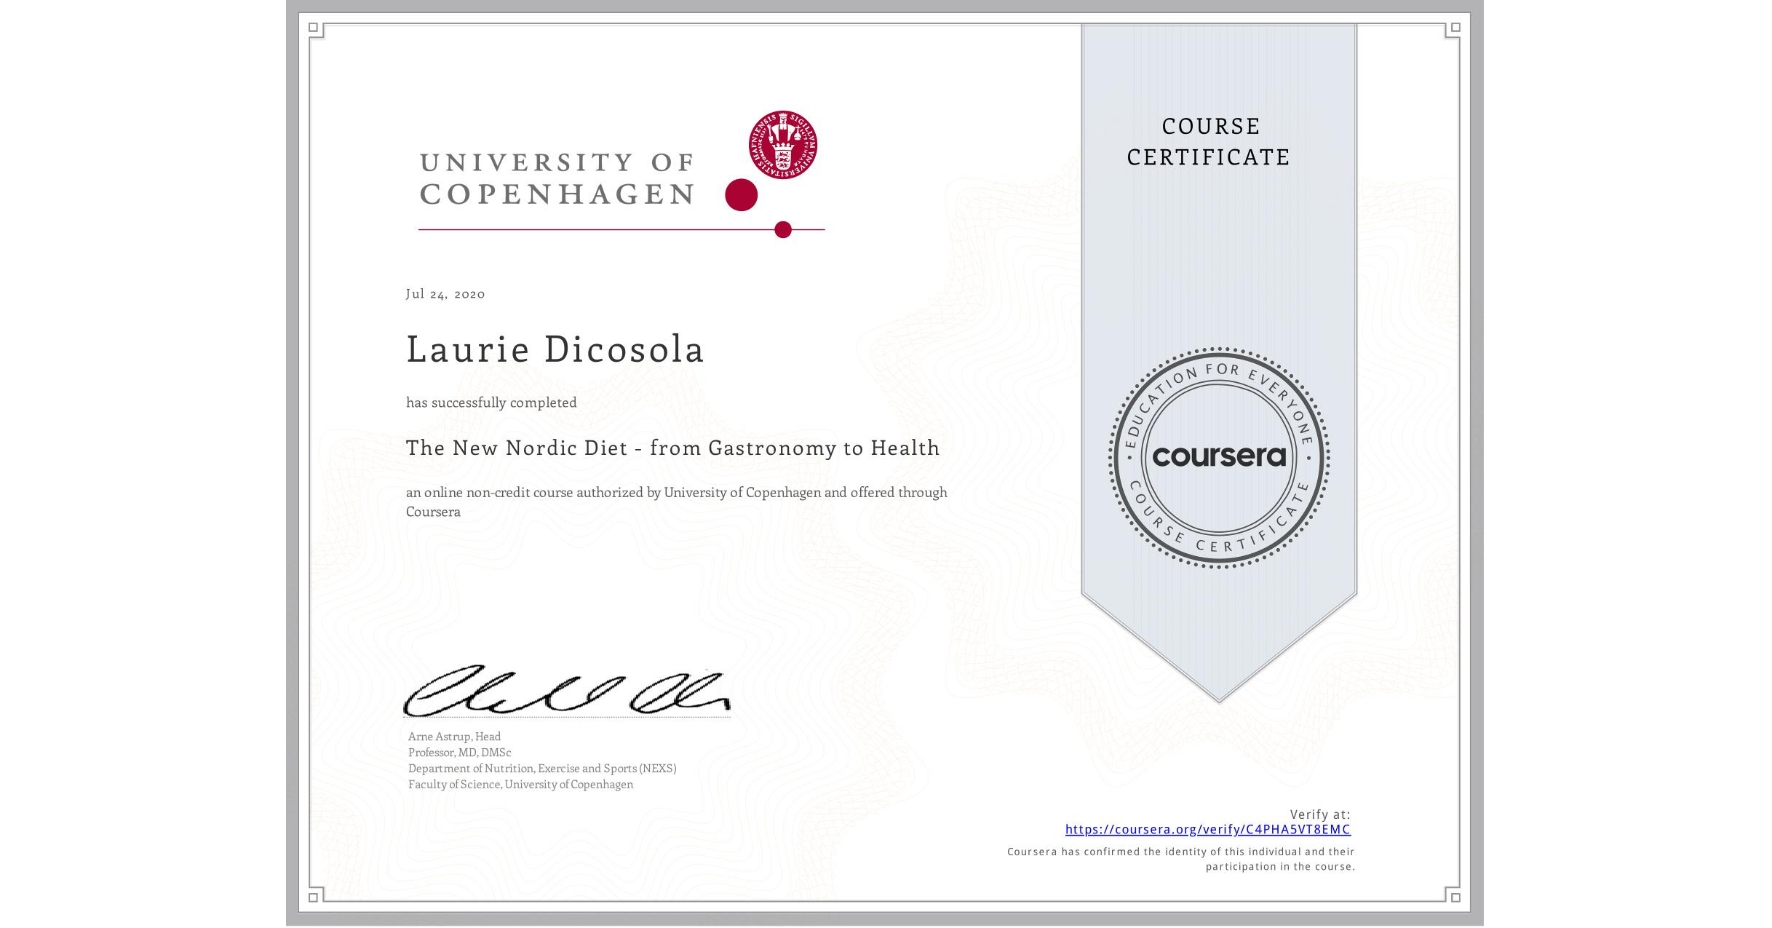 View certificate for Laurie Dicosola, The New Nordic Diet - from Gastronomy to Health , an online non-credit course authorized by University of Copenhagen and offered through Coursera